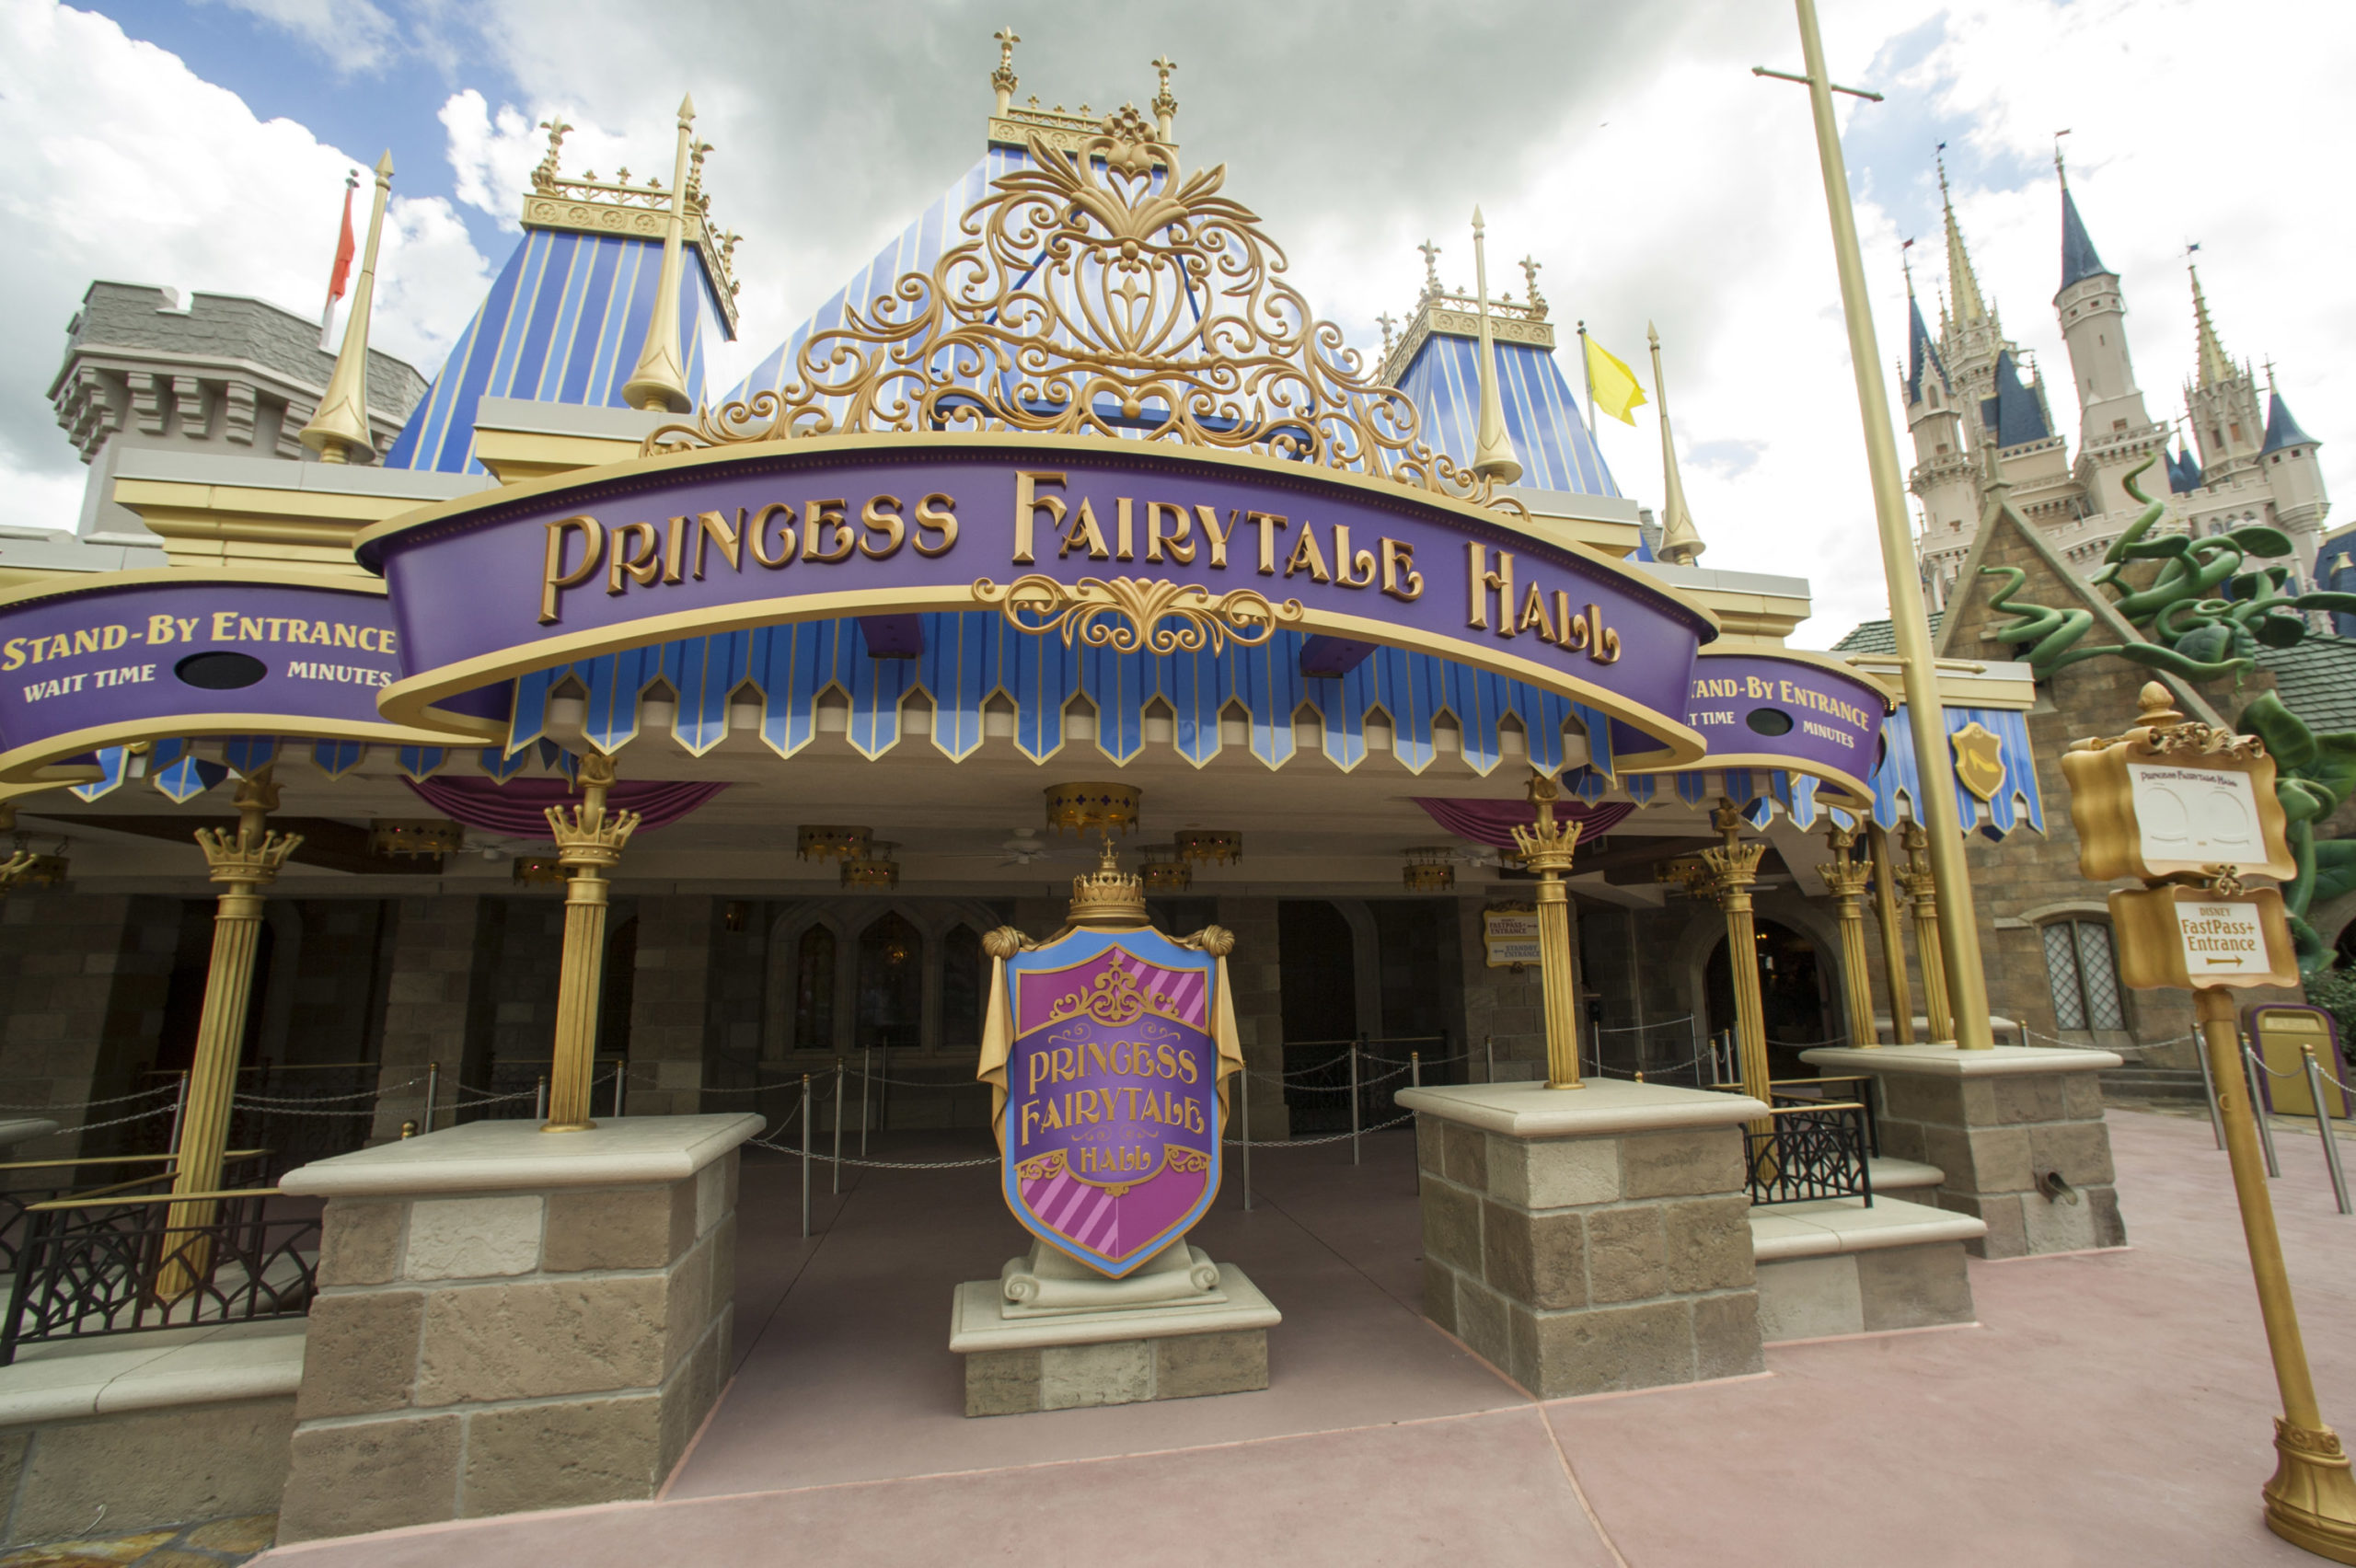 Princess Fairytale Hall in Disney's Magic Kingdom